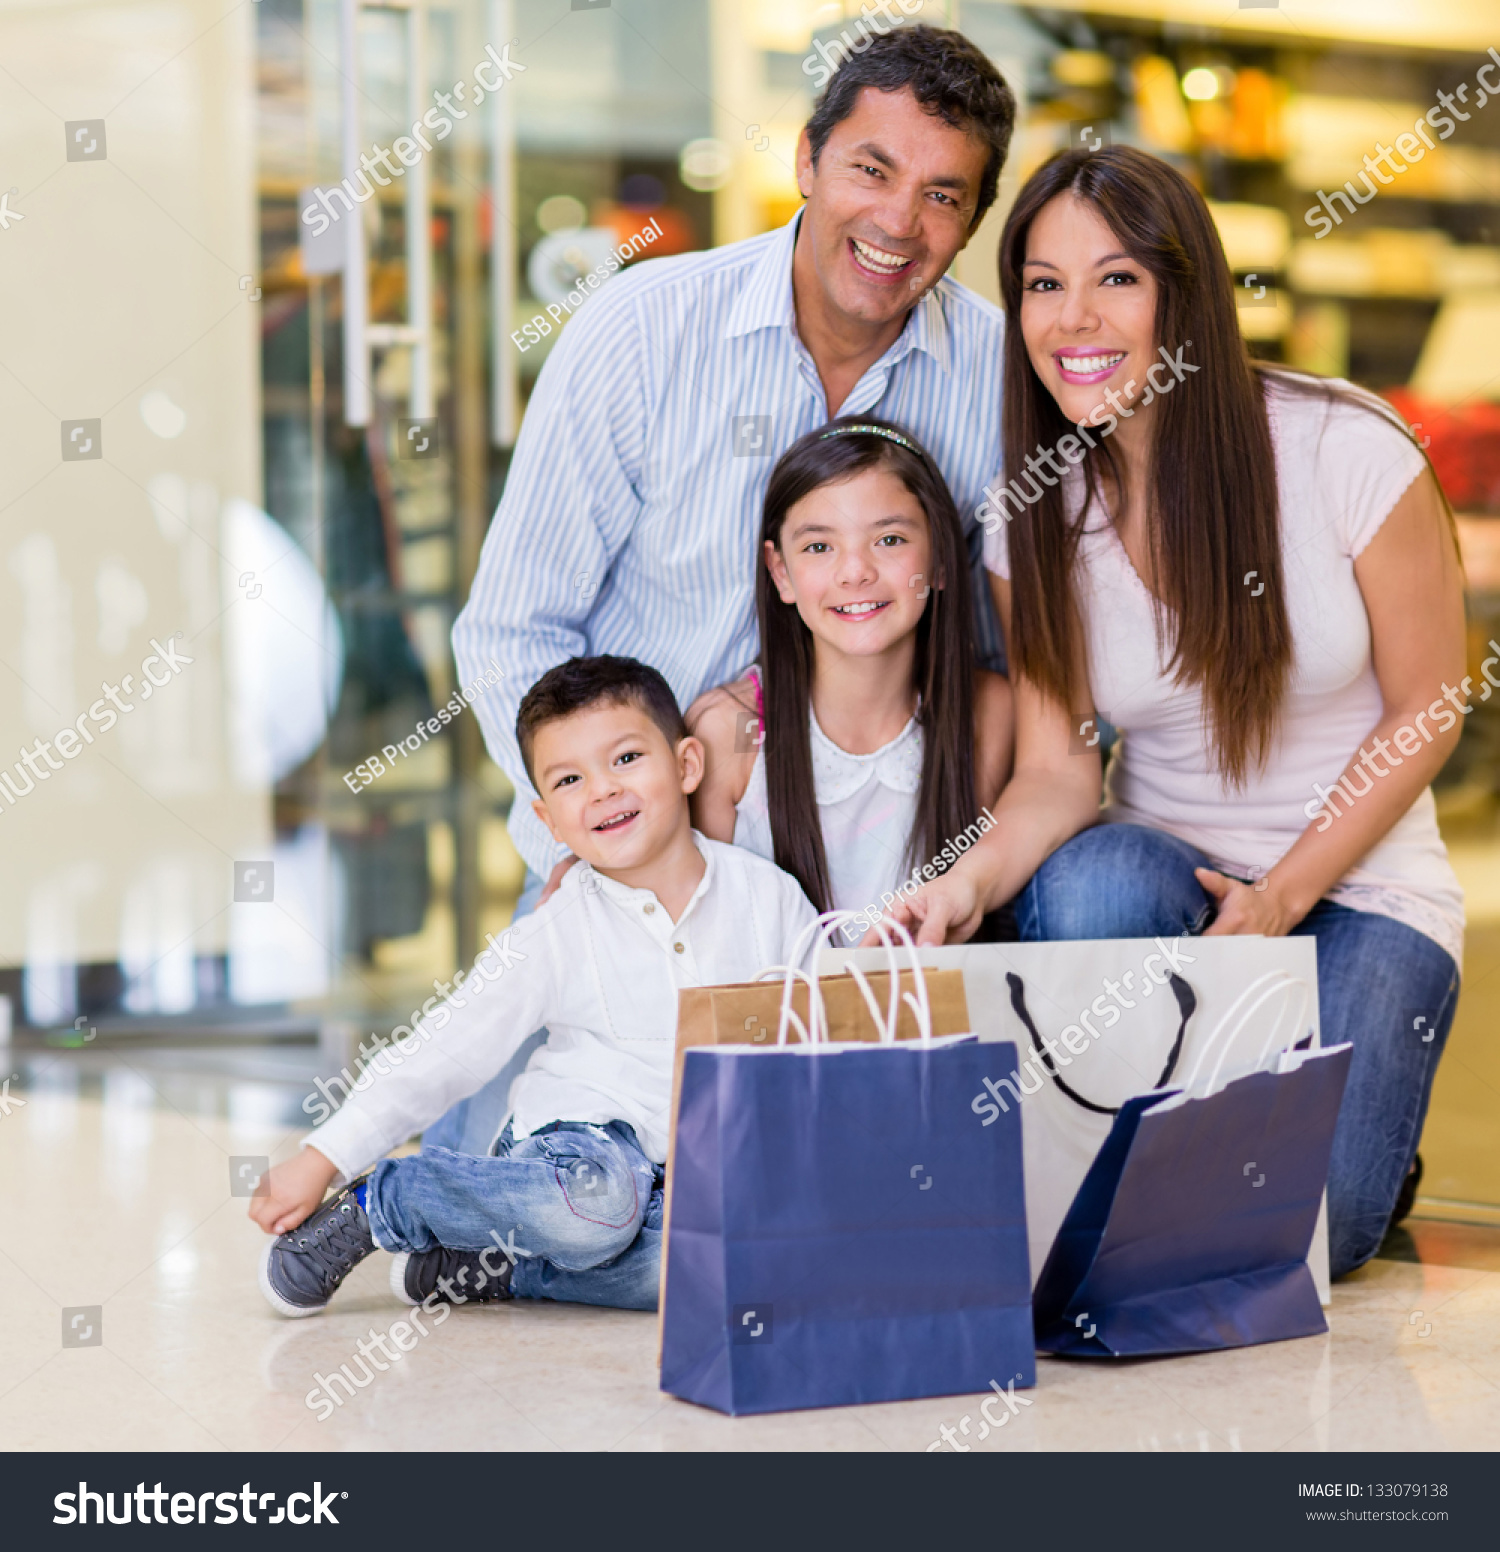 Beautiful Family Shopping At The Mall And Looking Very Happy